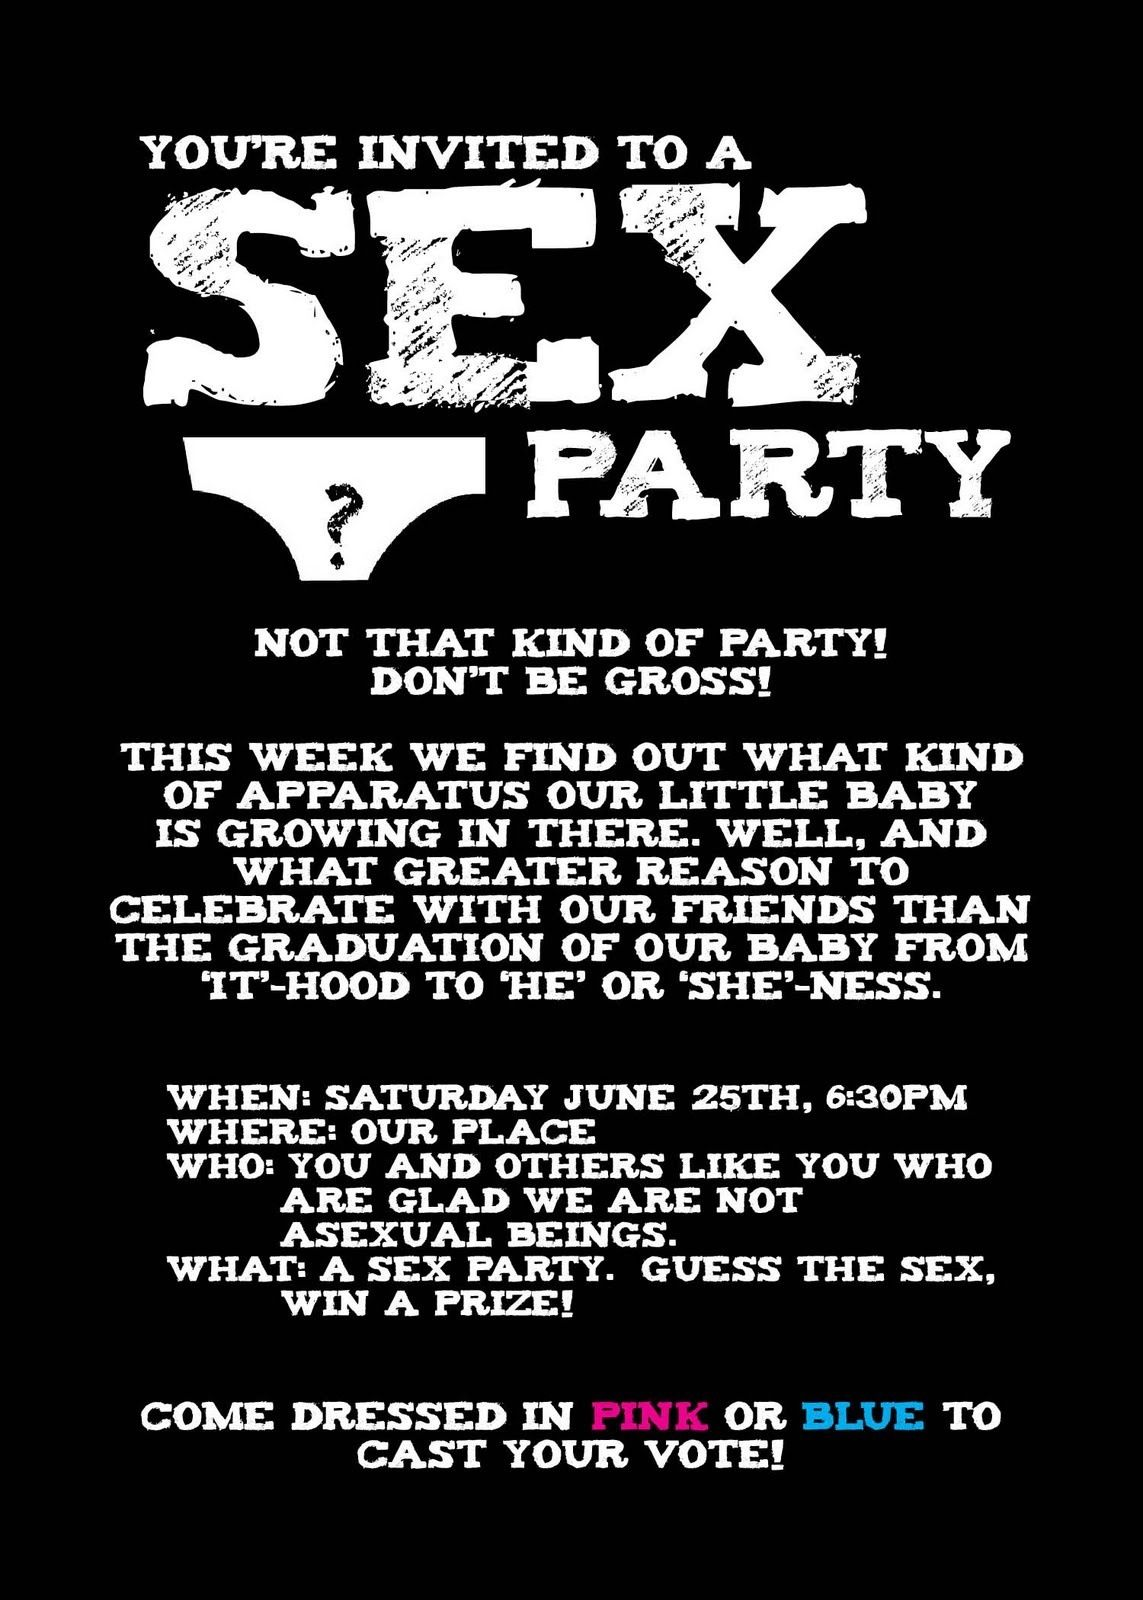 Gender Reveal Party Invite Hilarious!! I Don't Want To Do It